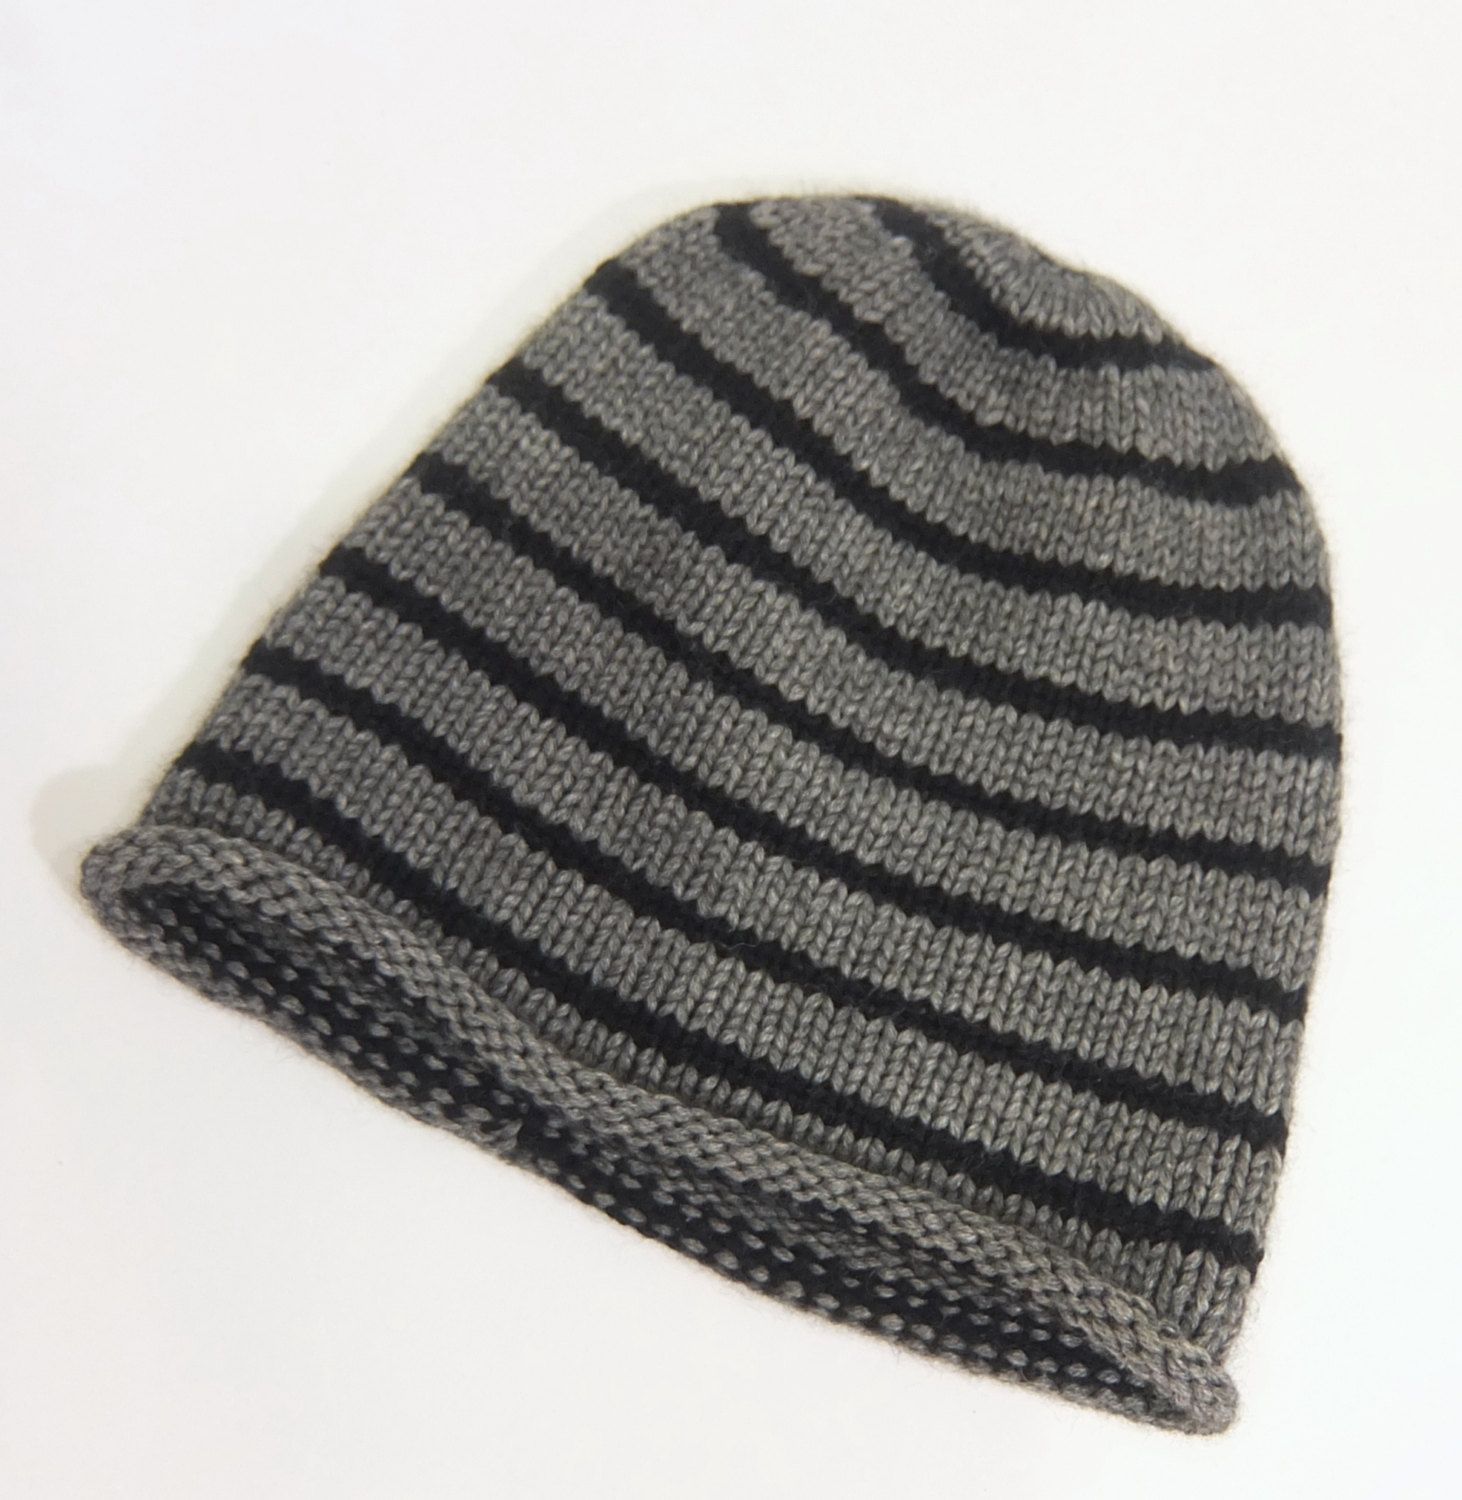 f3b27e0f7f8a0 Mens striped cashmere hat   Gray and Black   Unisex hat   Ski hat   Skull  cap   Close fitted beanie - pinned by pin4etsy.com